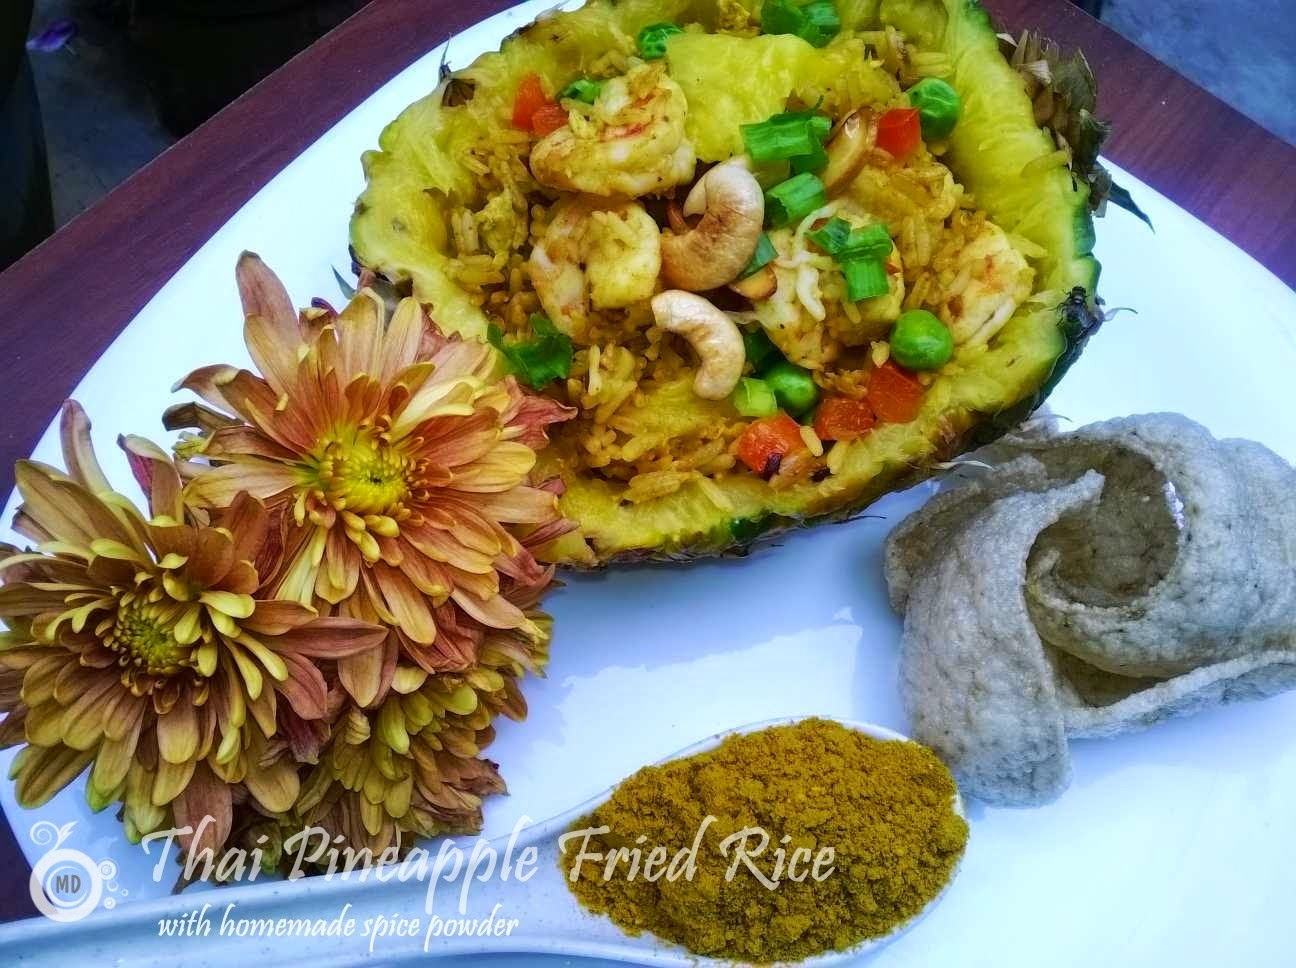 Fragrant Thai Pineapple Fried Rice